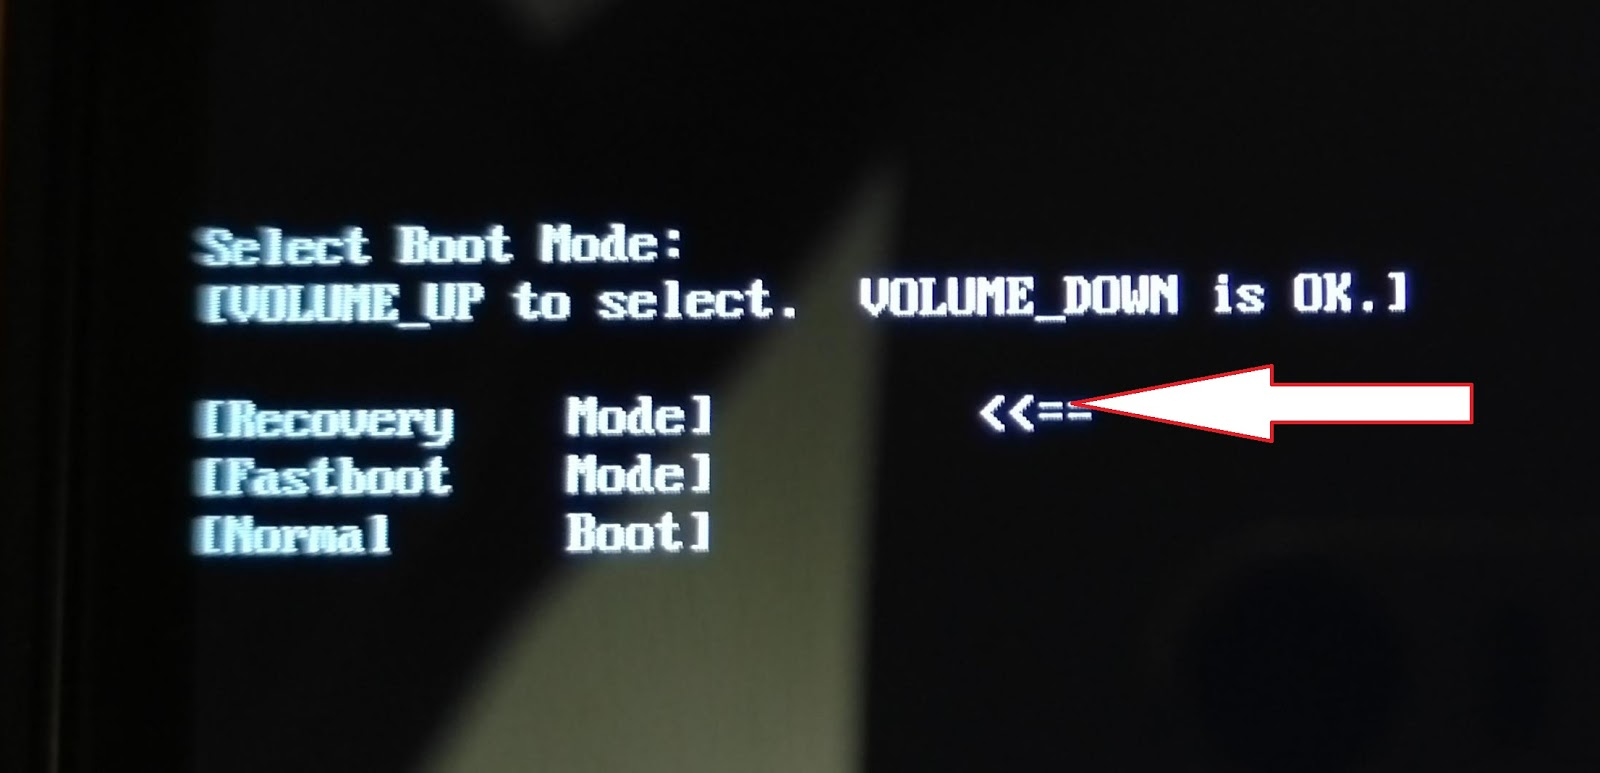 Asus android tablet recovery mode